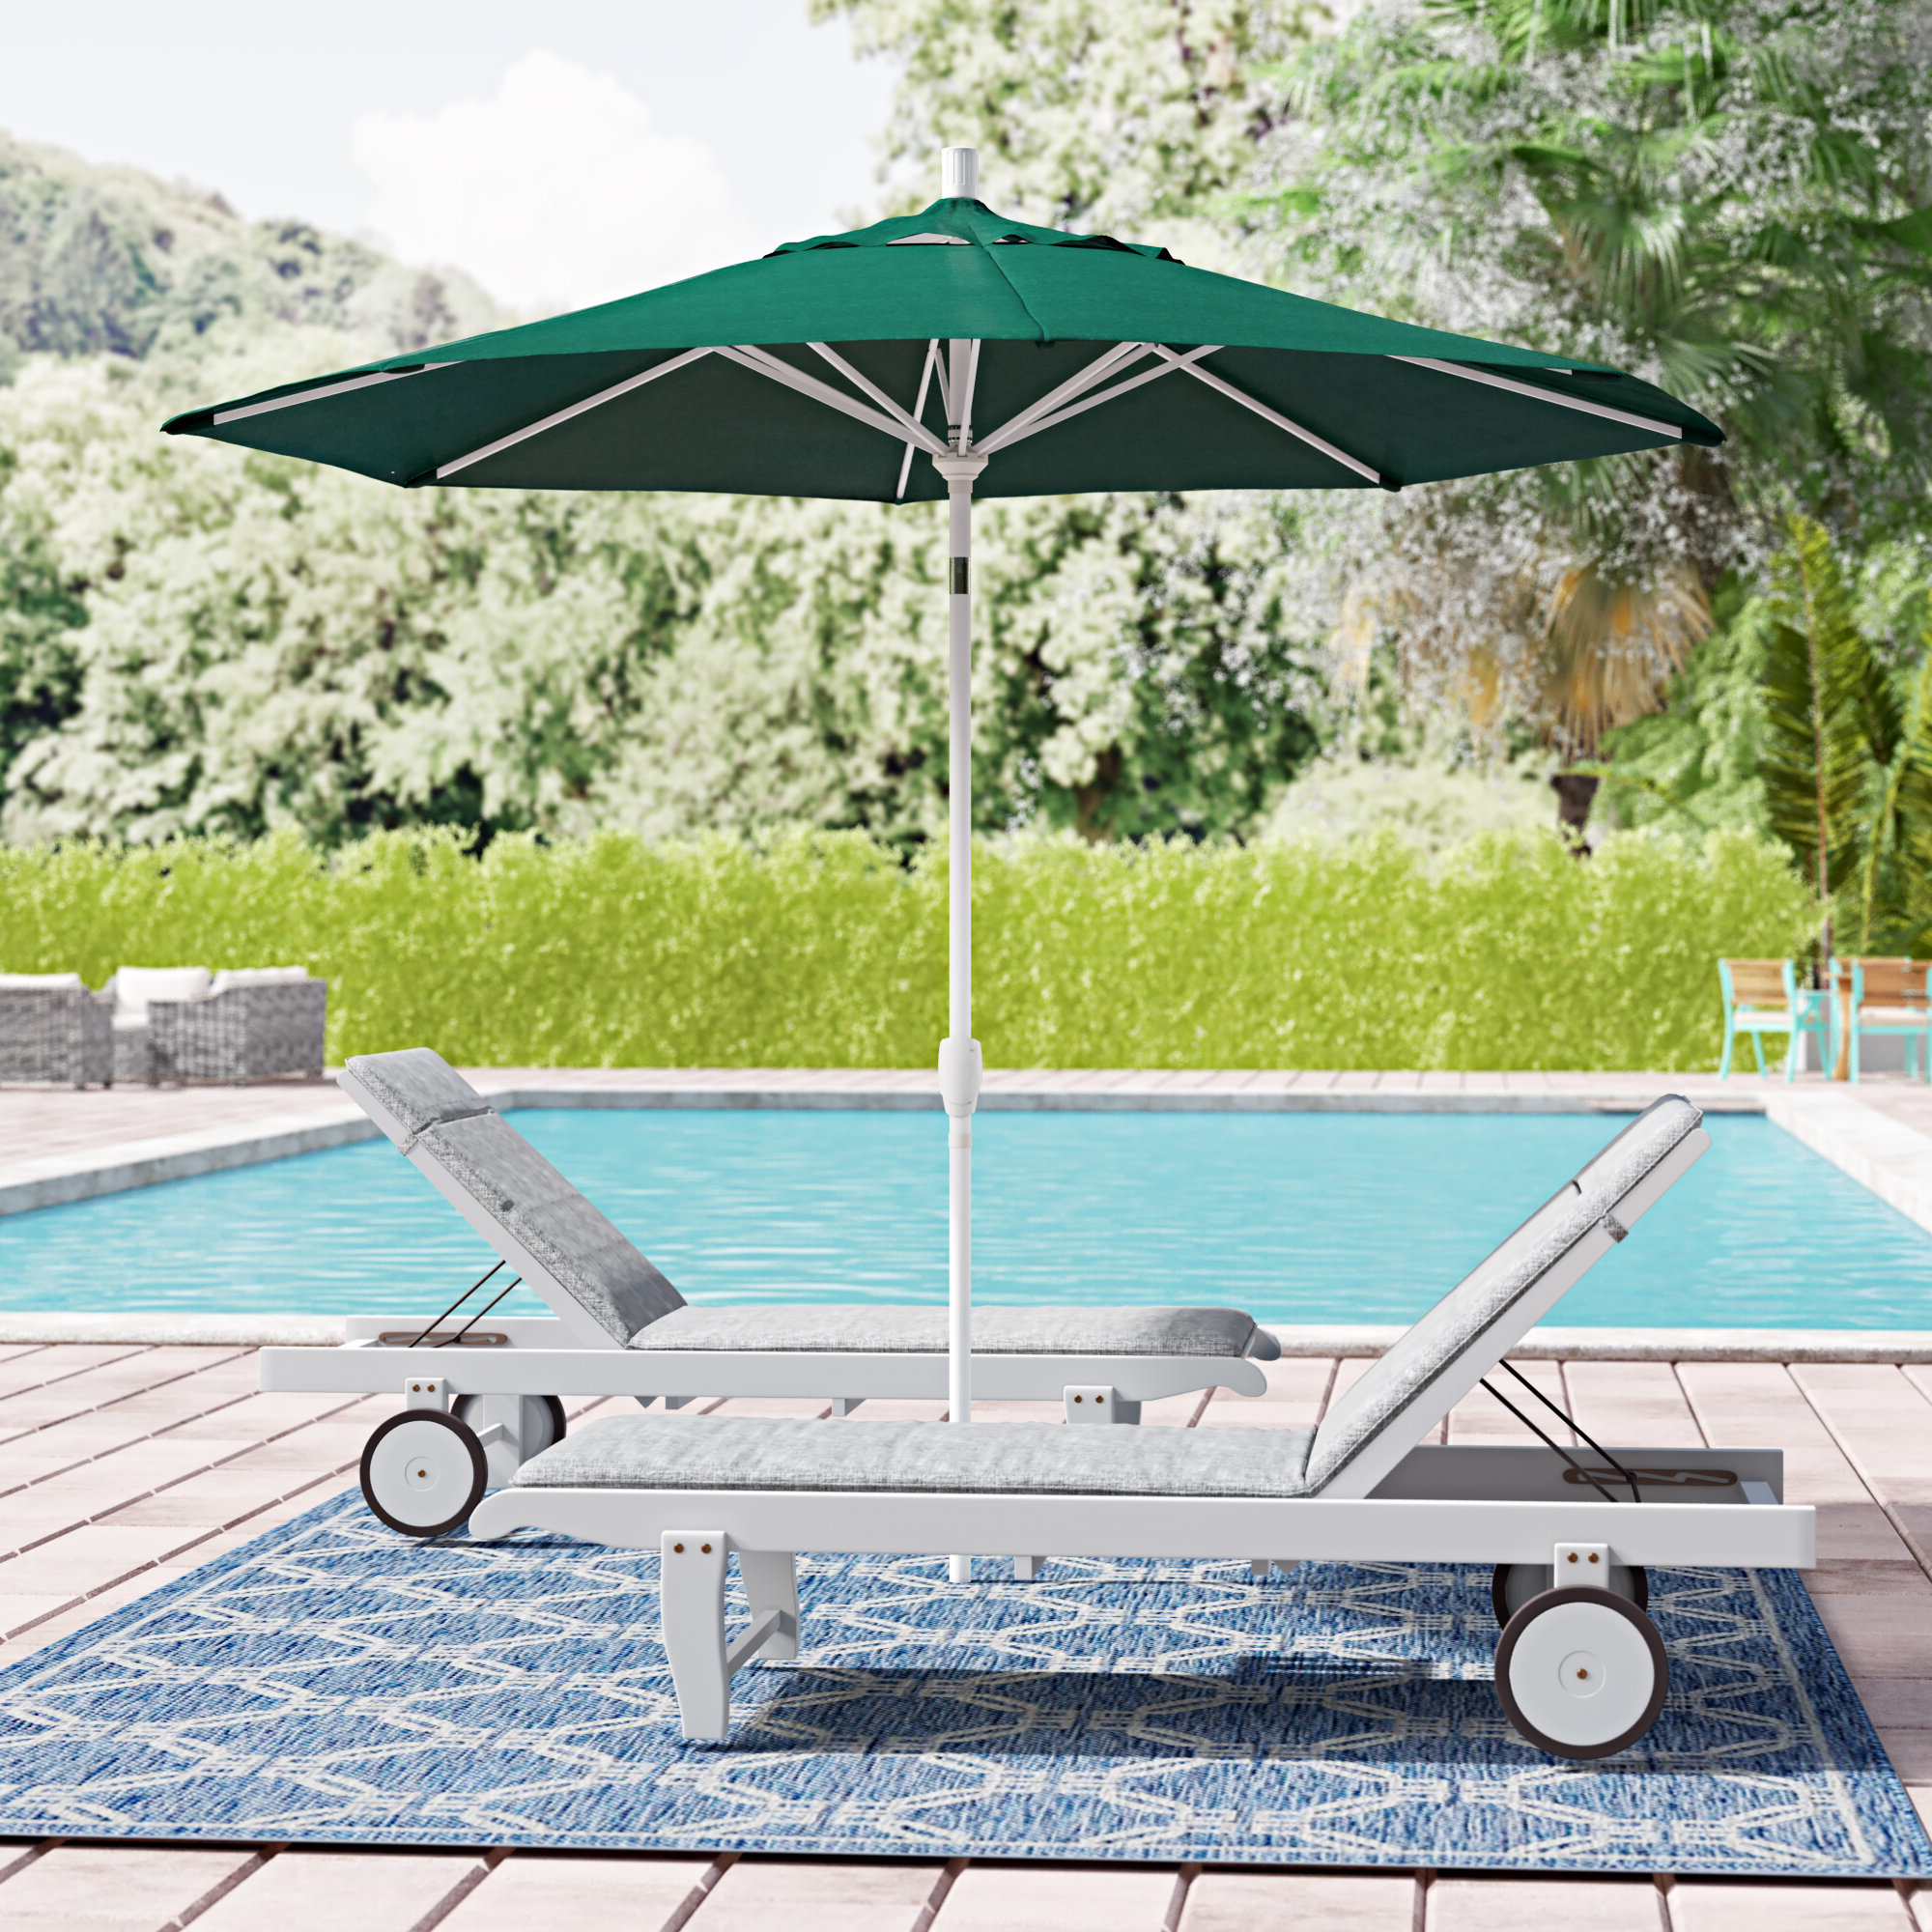 Most Recently Released Wallach 9' Market Umbrella Regarding Wallach Market Sunbrella Umbrellas (View 4 of 20)